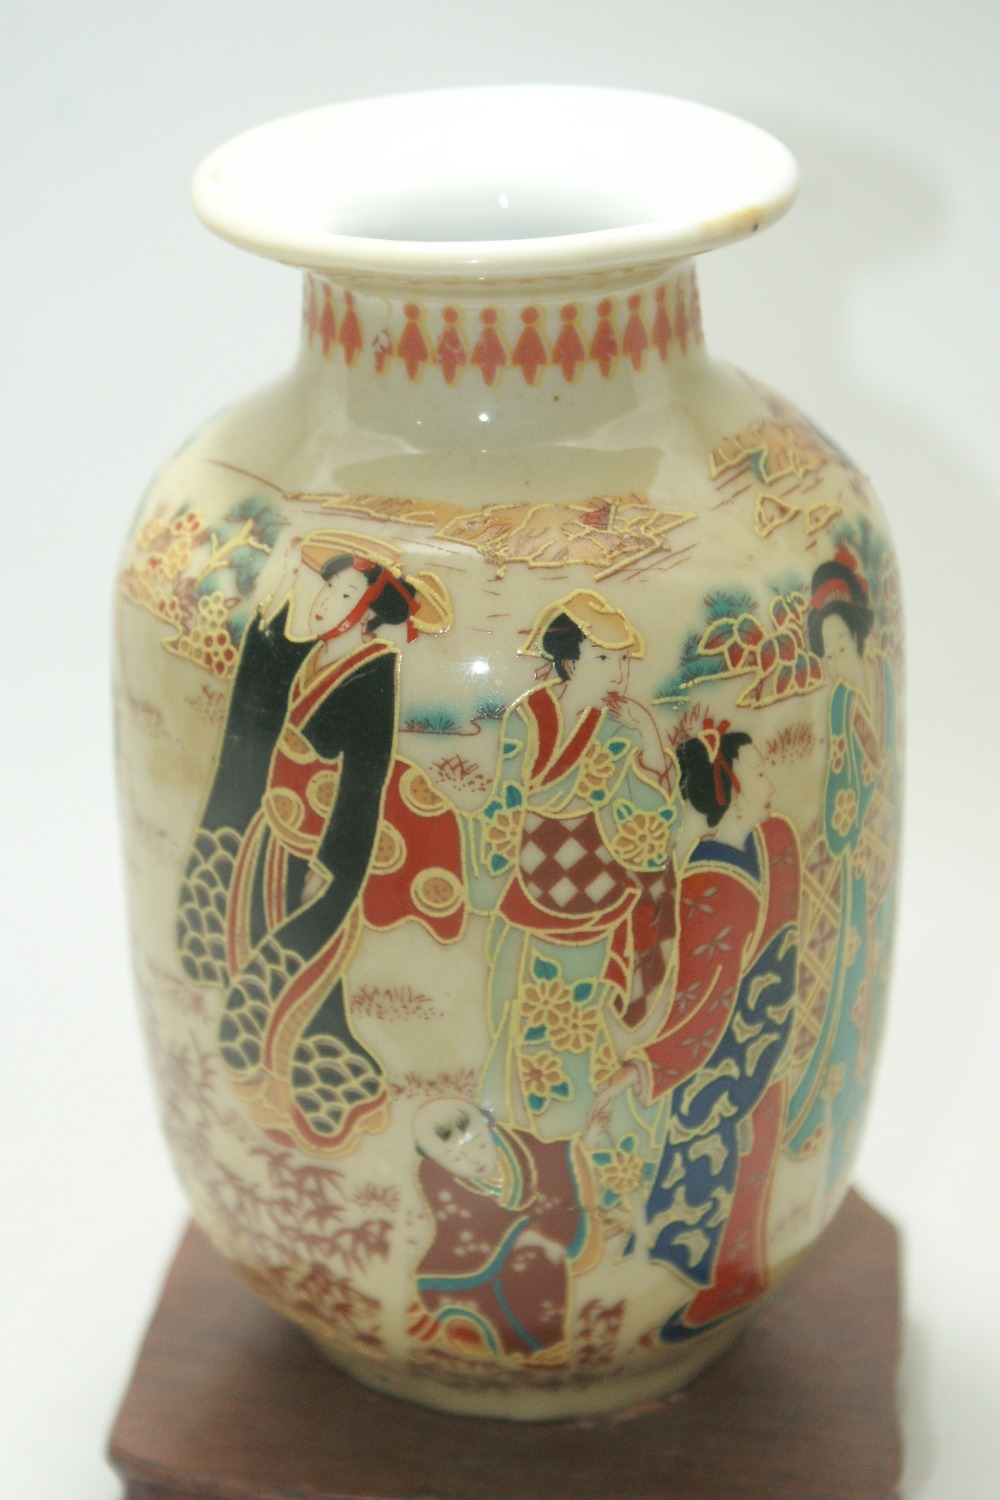 Fine Old Chinese porcelain painted Glaze porcelain Vases classic art collection and home decorations Free shipping